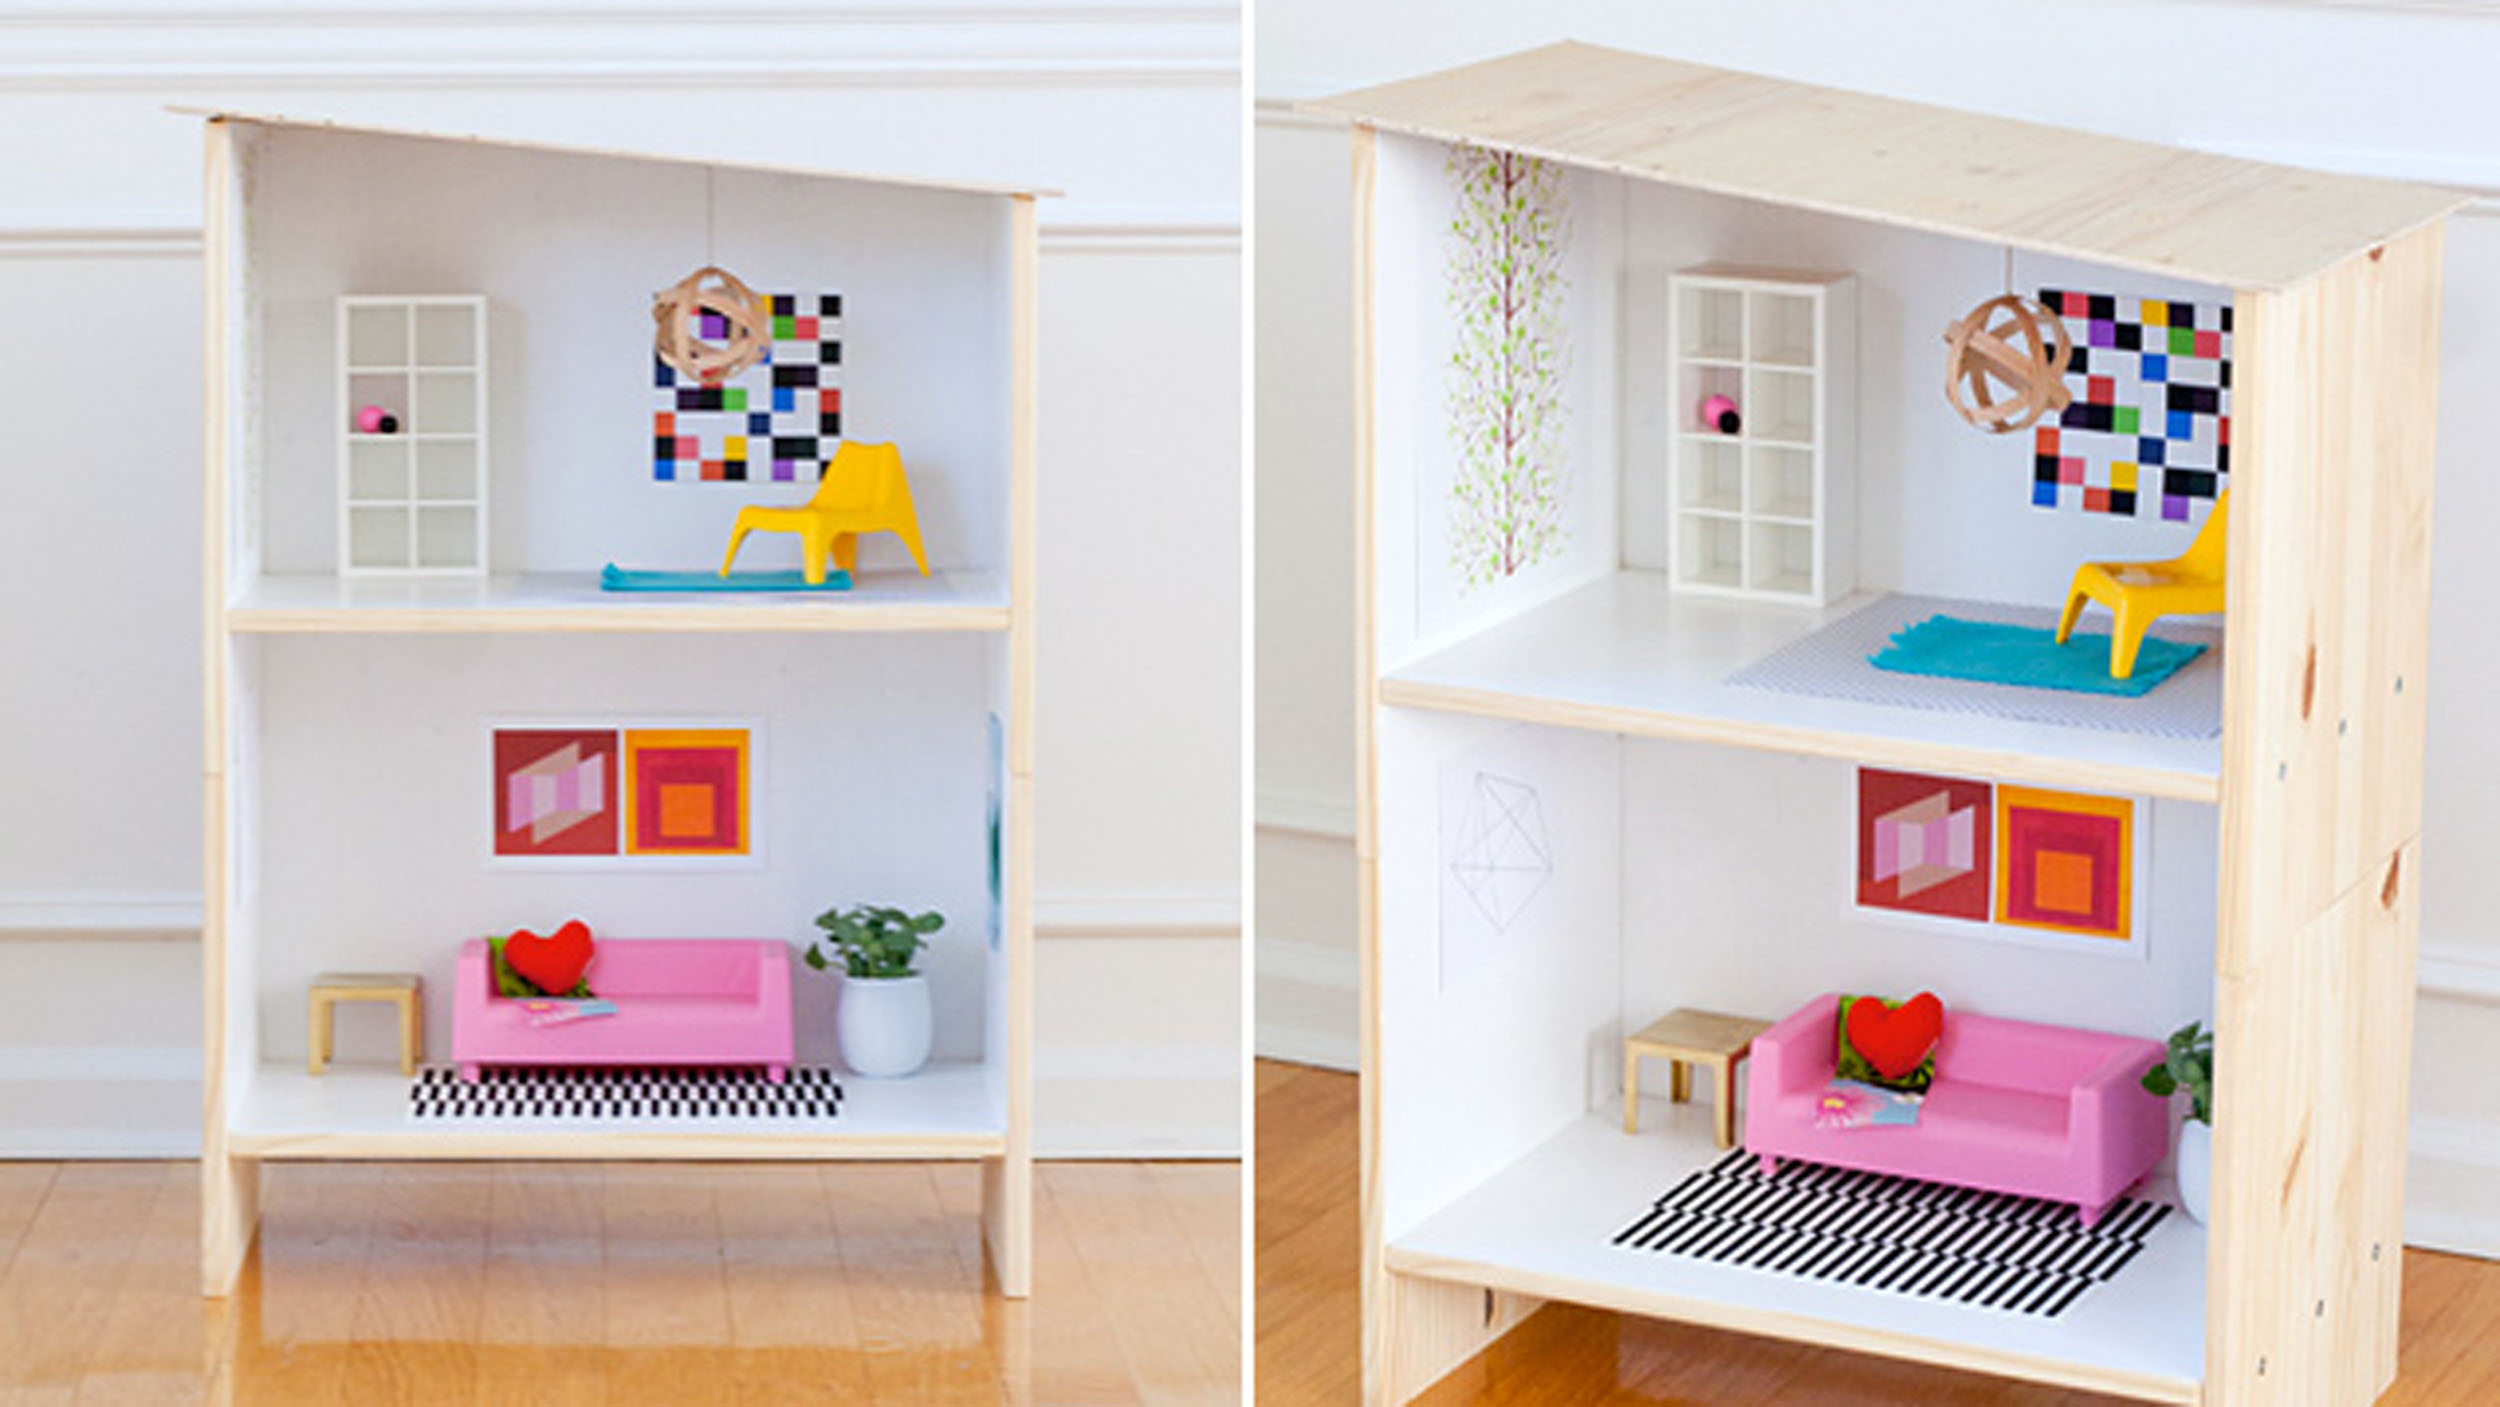 Diy holiday gifts ikea dollhouse hack - Casa delle bambole ikea ...